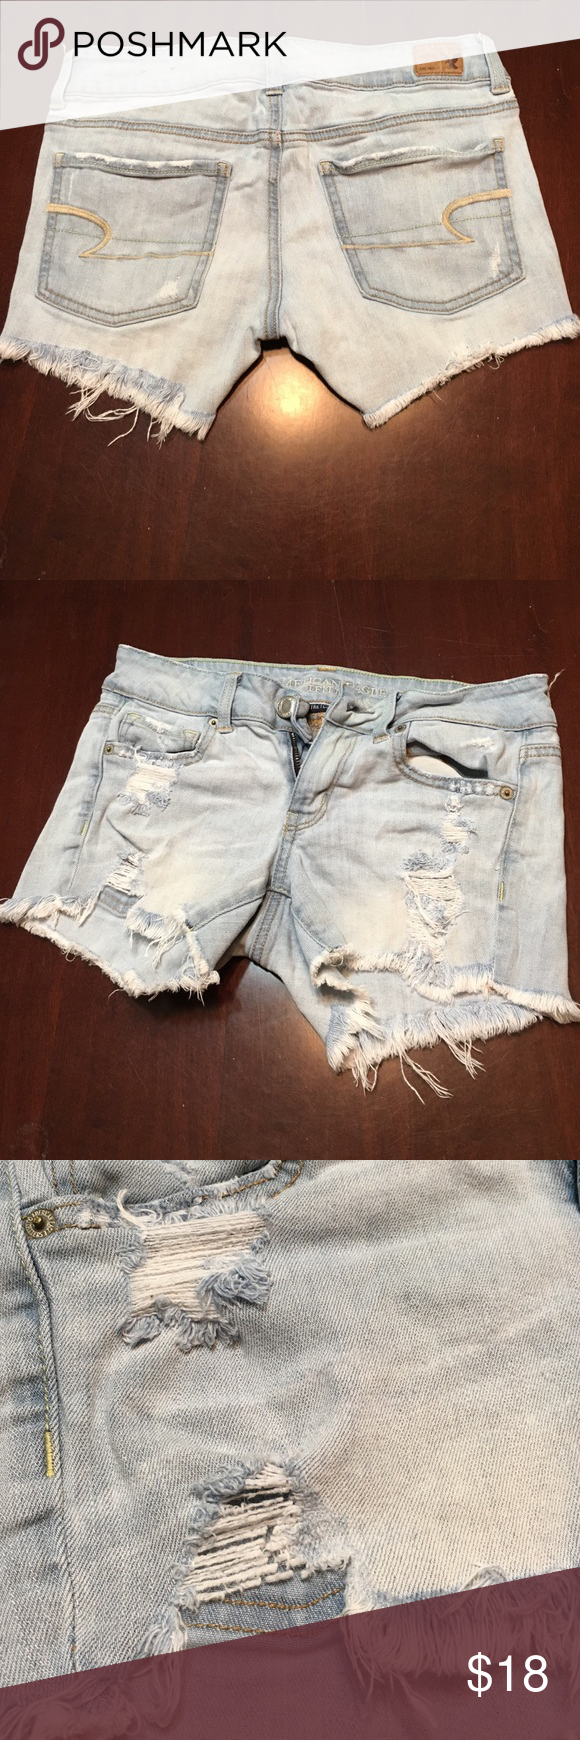 American Eagle Size 4 Distressed Shorts Size 4. American Eagle jean shorts (stretchy). They are distressed with holes and fringe on the bottoms. They have a little bit of wear but still lots of life! American Eagle Outfitters Shorts Jean Shorts